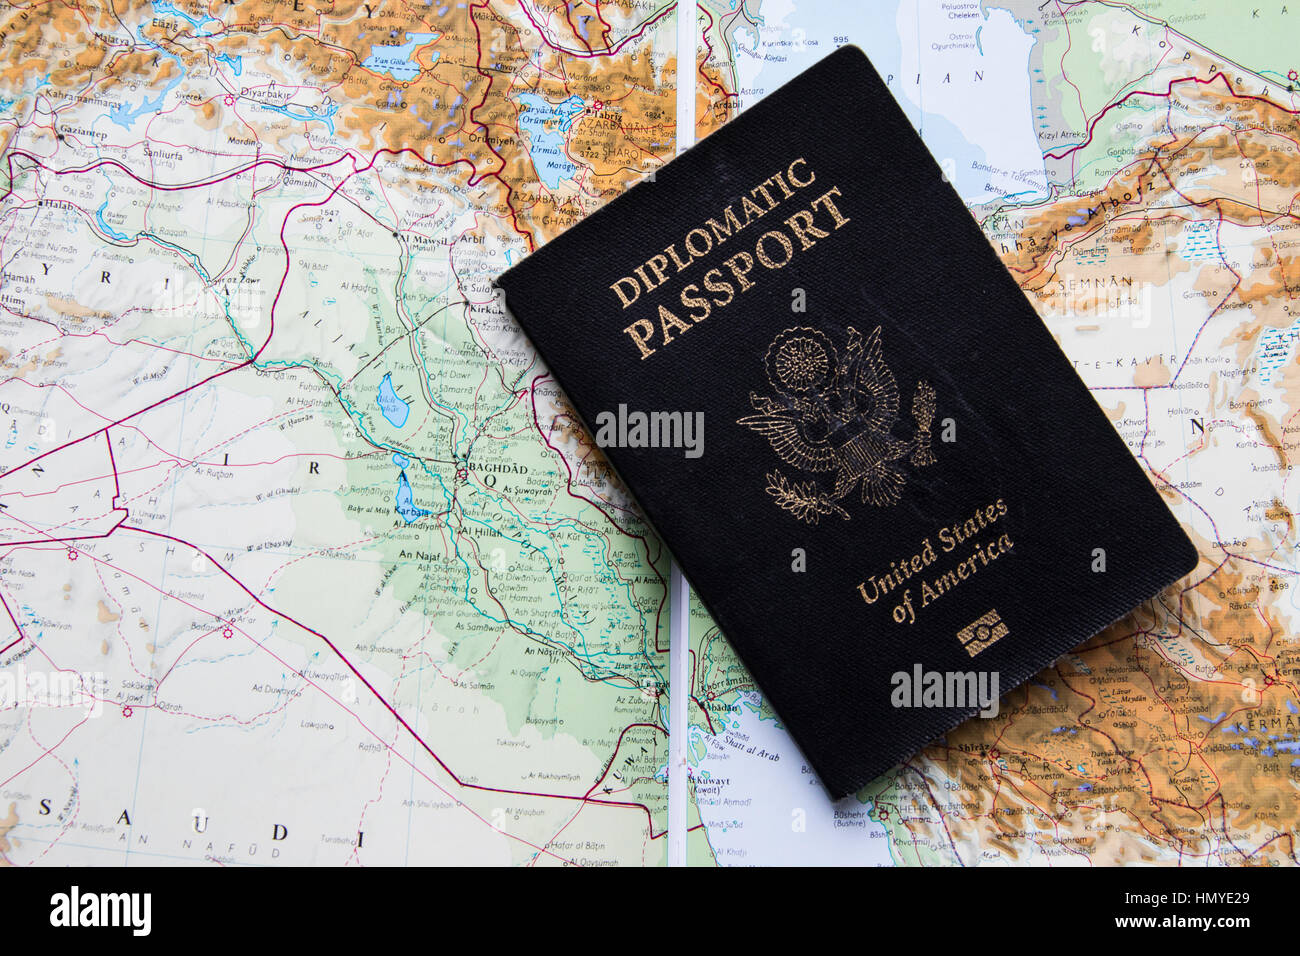 Diplomatic pport of the United States of America, on a ... on map of lo, map of general motors, map of vb, map of cr, map of ra, map of le, map of no, map of so, map of gr, map of ge, map of white, map of sa, map of re, map of kawasaki, map of sp, map of tv, map of ta, map of international, map of ch, map of pc,